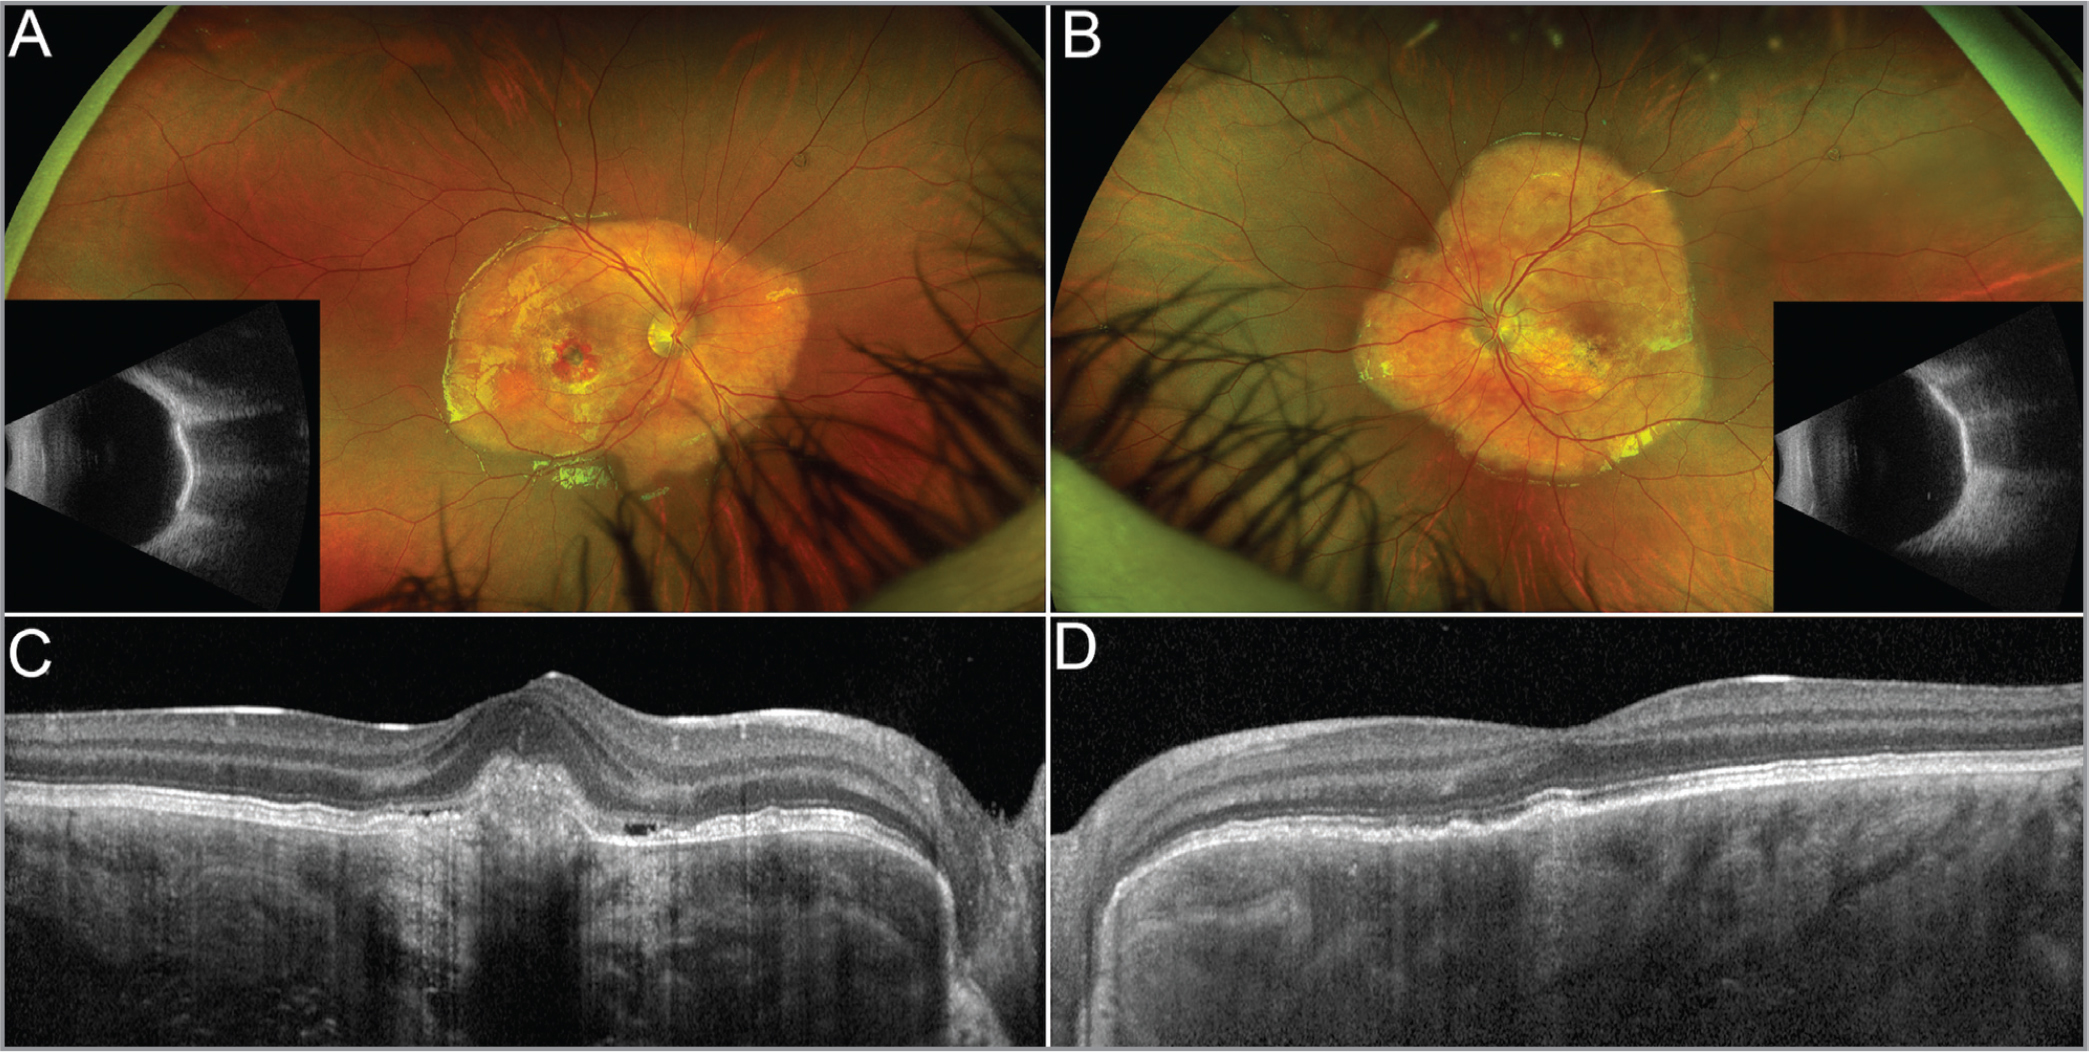 Multimodal imaging of bilateral choroidal osteoma. Ultra-widefield multicolor images showed the presence of an extensive yellowish lesion corresponding to echogenicity attenuation showed by ultrasound for the right eye (OD) (A) and left eye (OS) (B), respectively. Macular hemorrhage is shown OD, as well. Structural optical coherence tomography (OCT) showed subretinal mixed-reflective material accumulation OD corresponding to choroidal neovascularization (C); Structural OCT detected hyperreflective retinal bands rarefaction and multiple small hyperreflective subretinal accumulations OS (D).